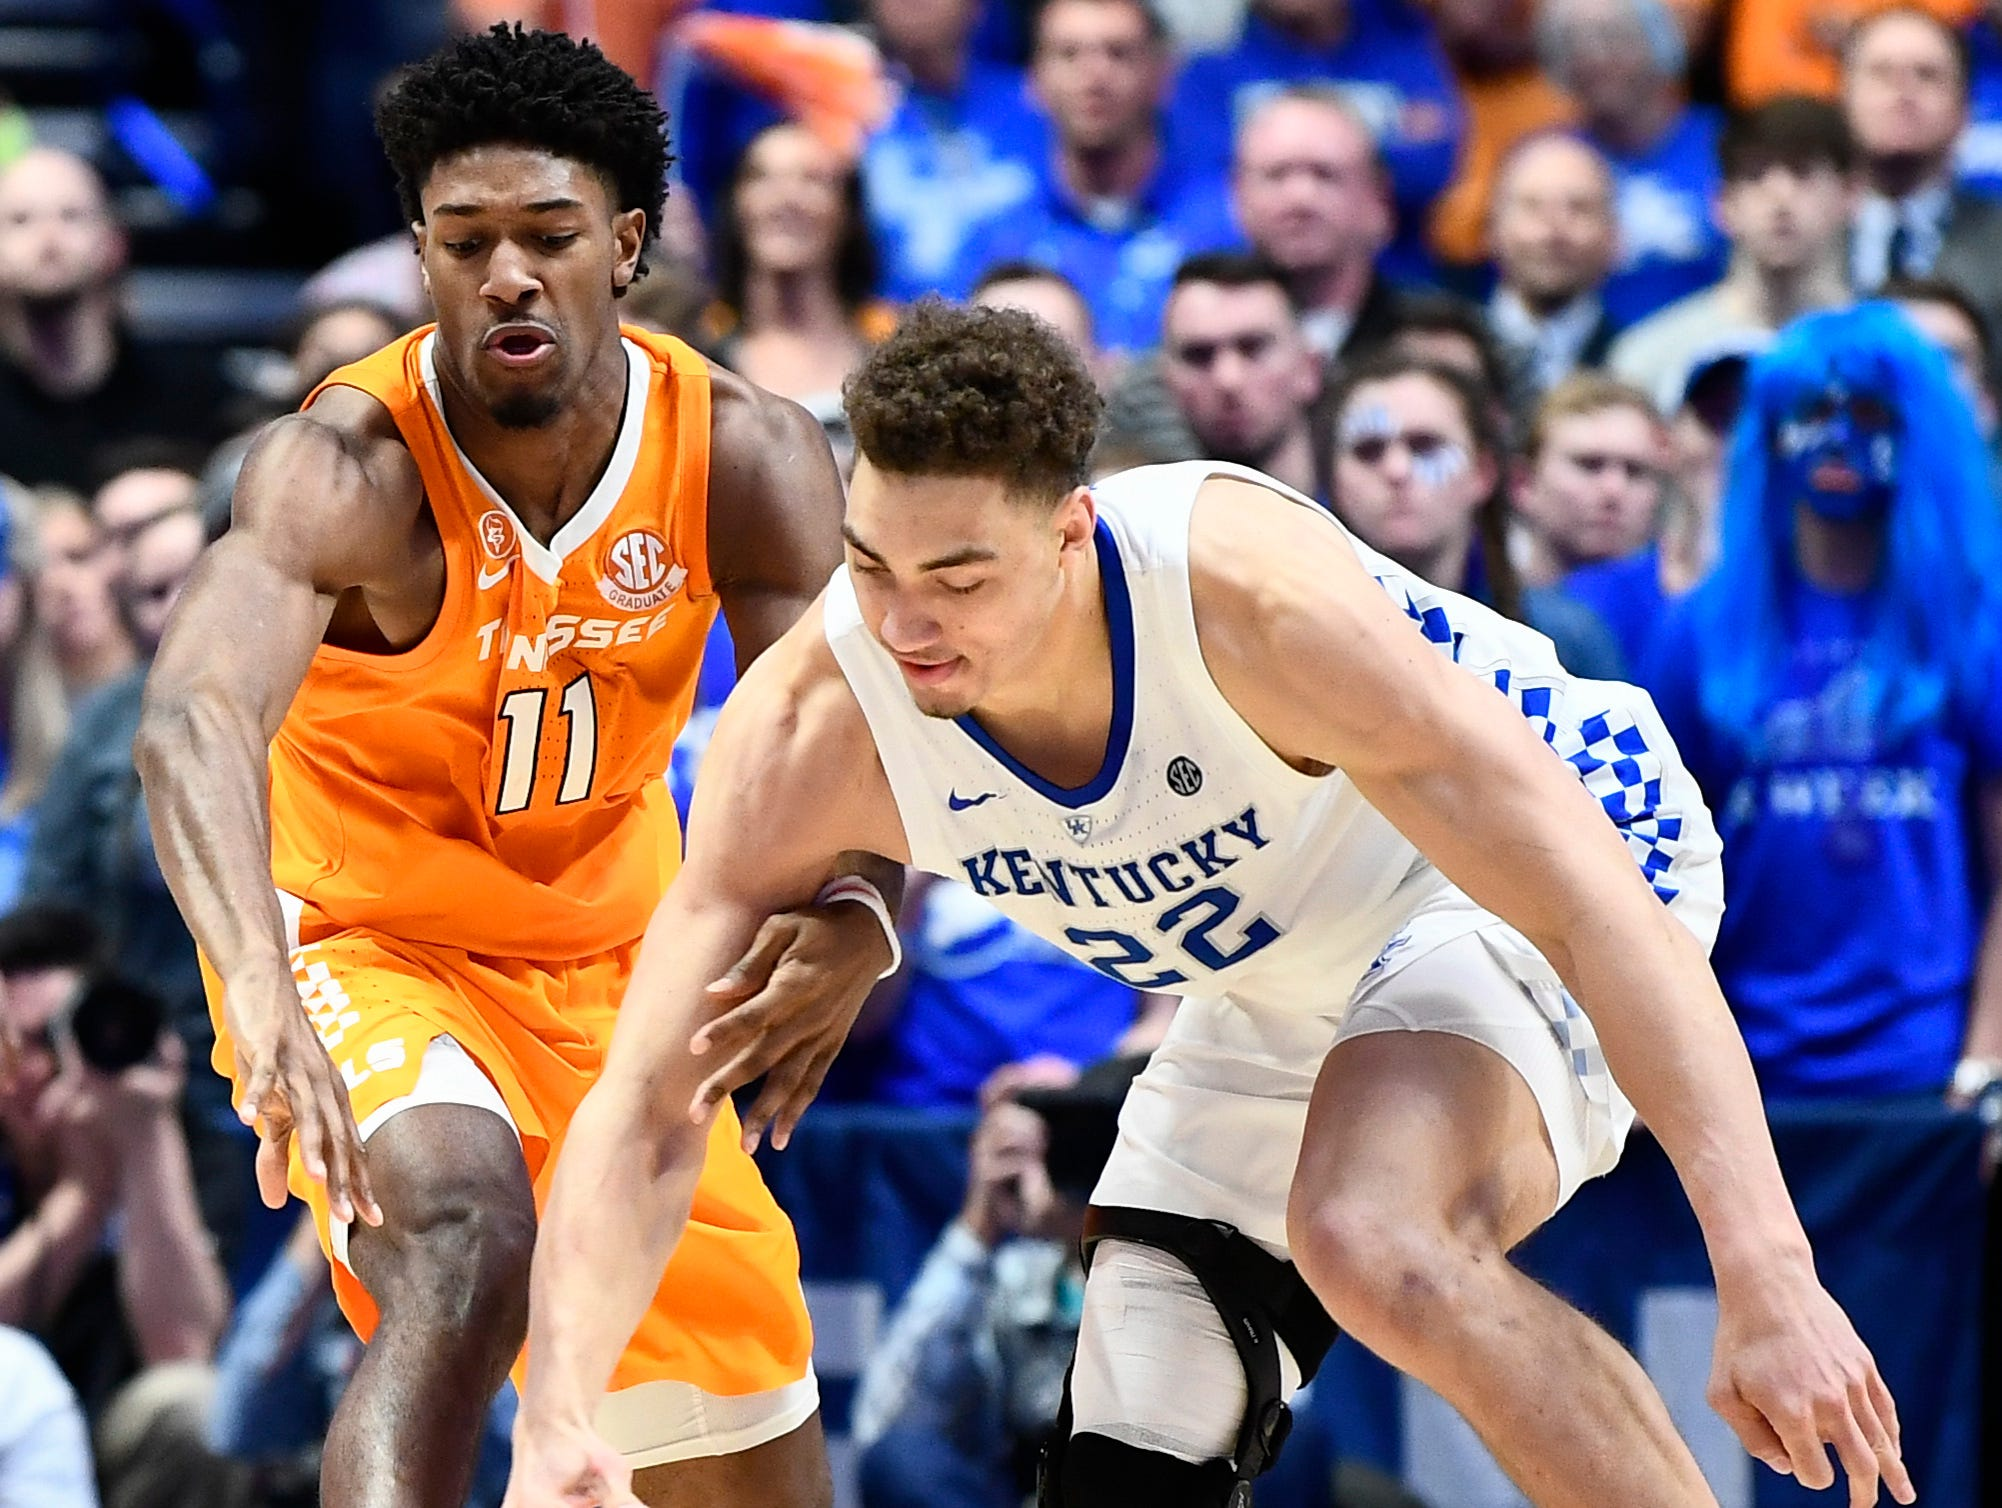 Tennessee forward Kyle Alexander (11) and Kentucky forward Reid Travis (22) chase a loose ball during the second half of the SEC Men's Basketball Tournament semifinal game at Bridgestone Arena in Nashville, Tenn., Saturday, March 16, 2019.